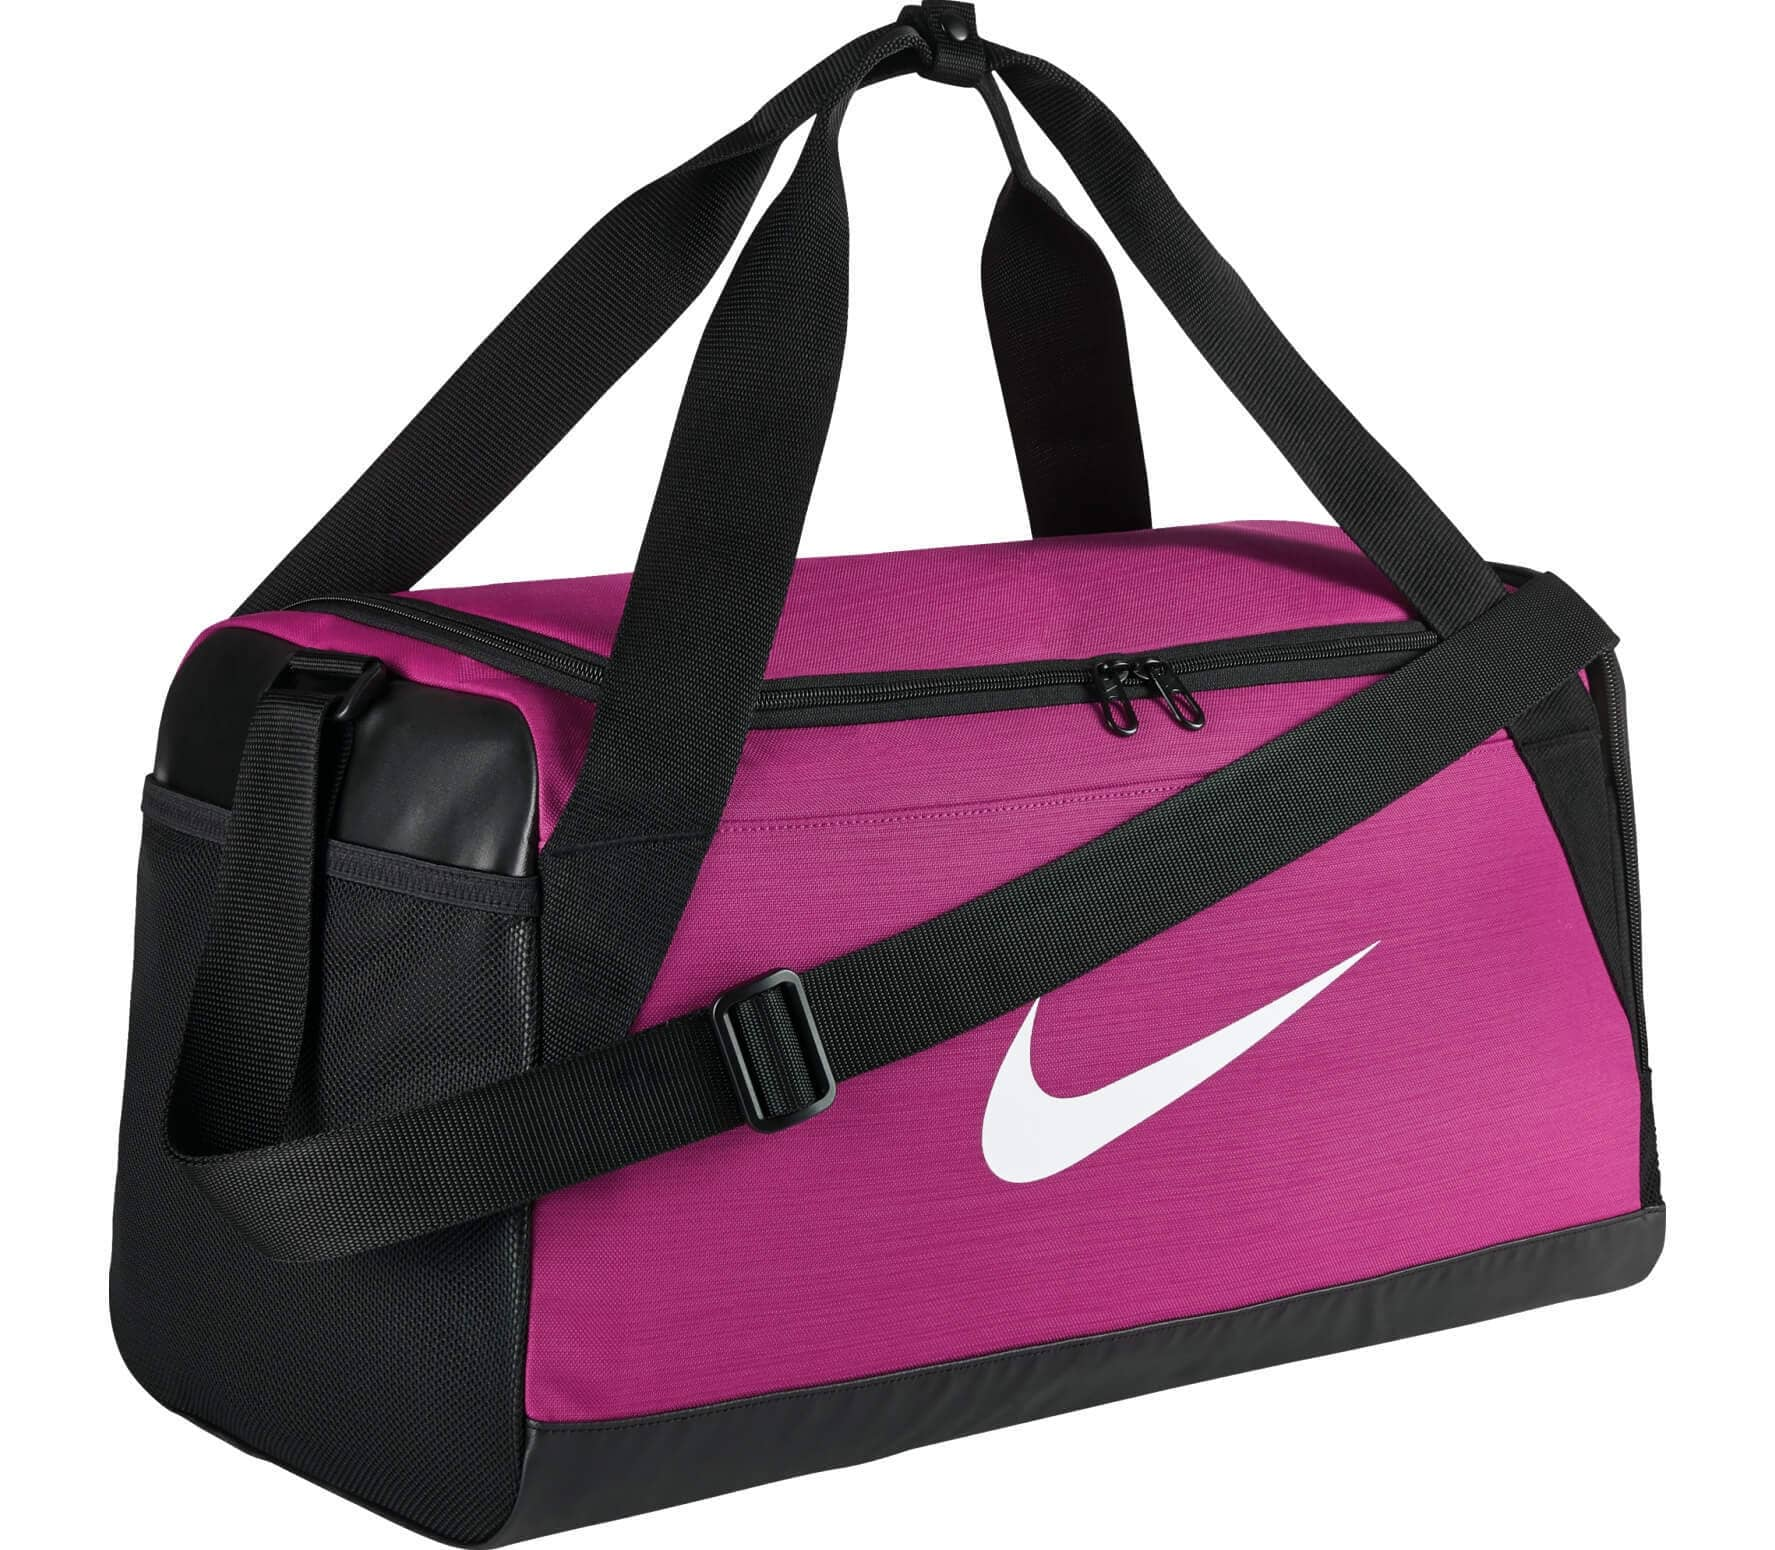 bdb3c24eb4e1 Nike - Brasilia Small men s training duffel bag bag (pink black ...